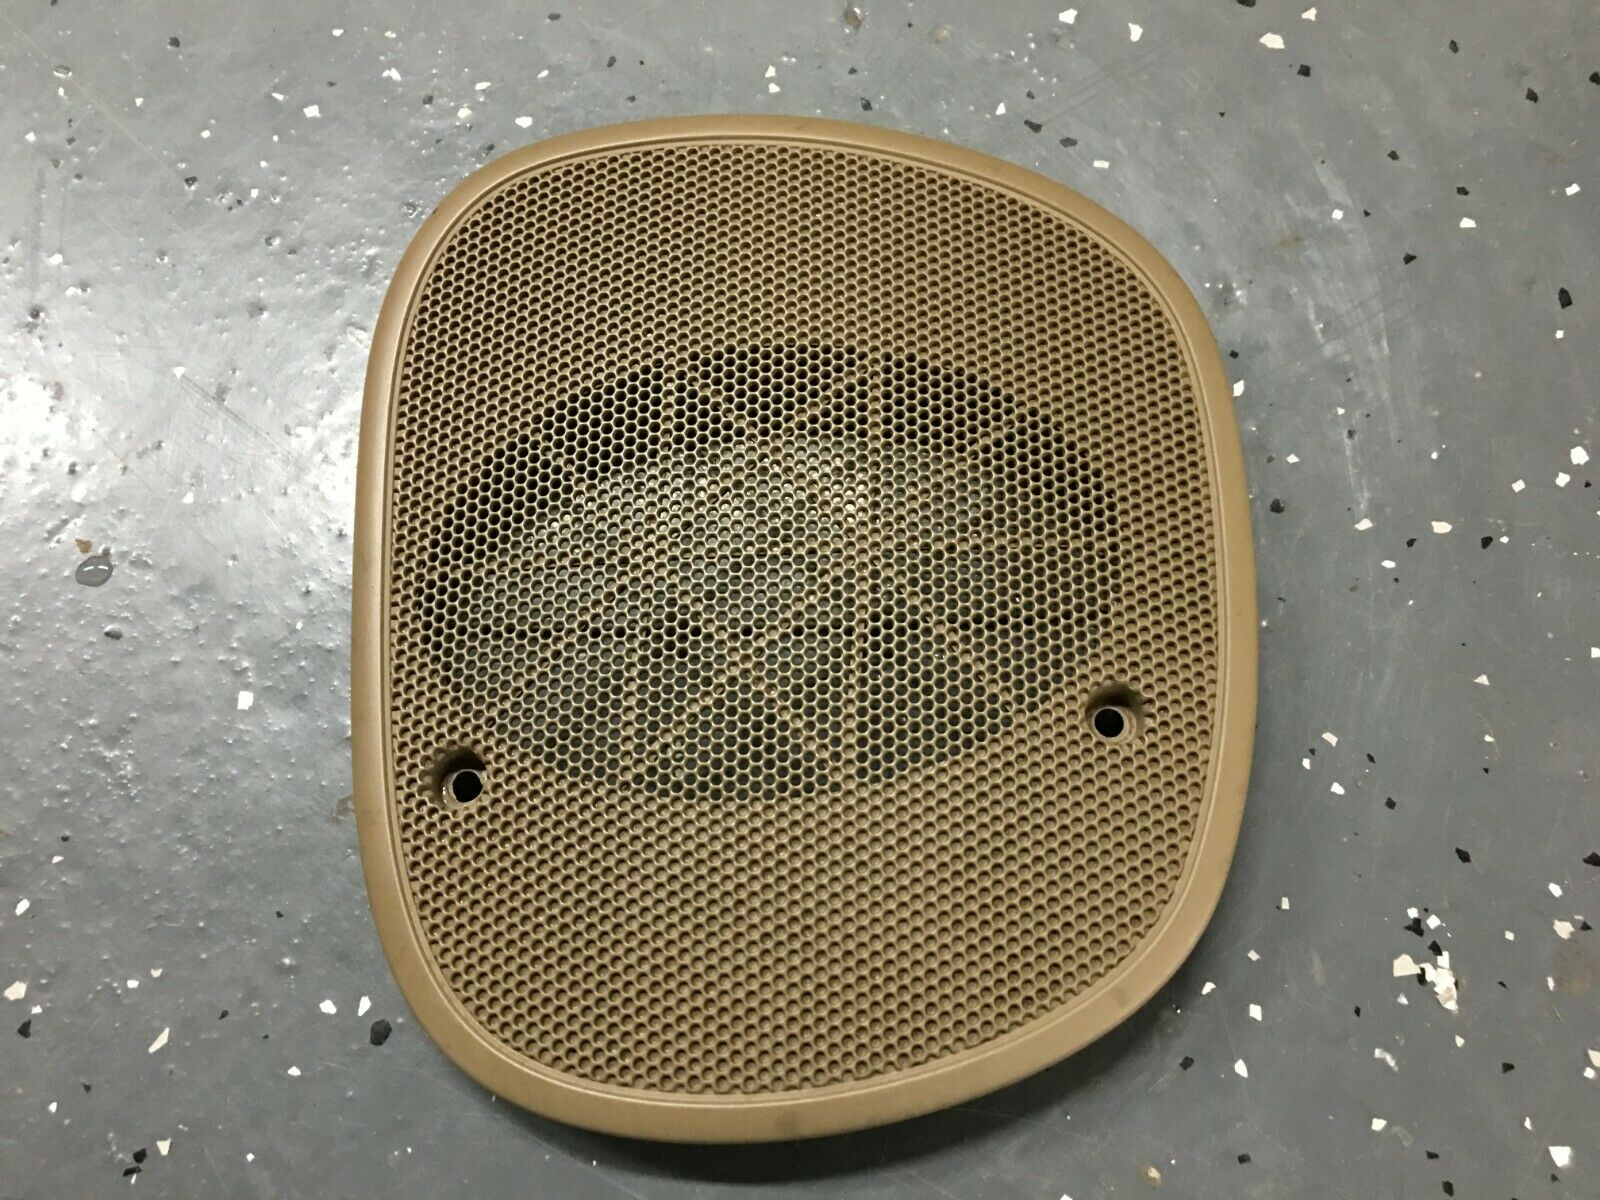 98 05 Chevy S10 Pickup Truck Blazer Gmc Jimmy Dash Speaker Cover 1 Of 3only Available